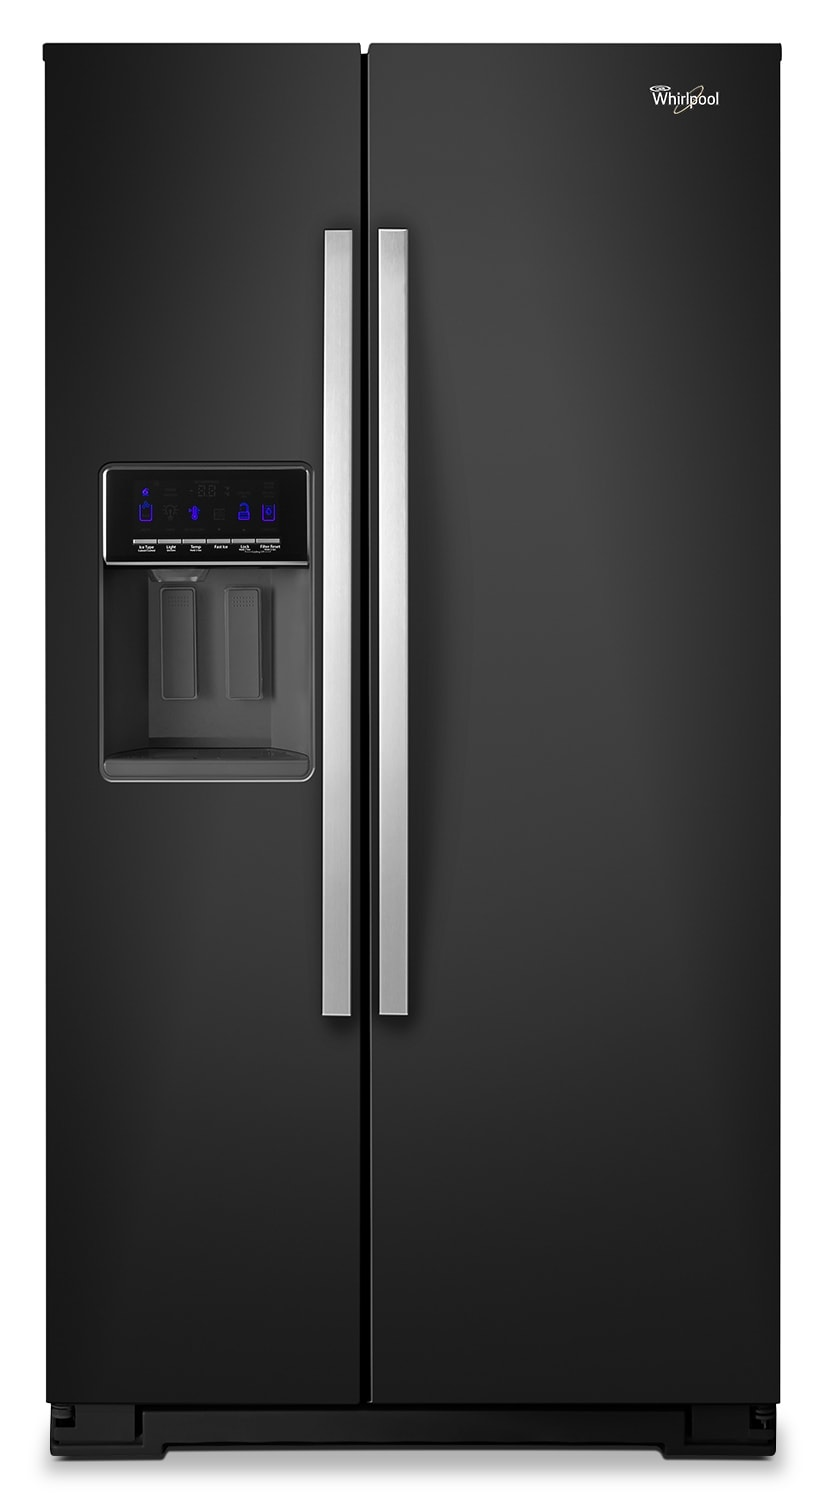 Whirlpool 26 Cu. Ft. Side-by-Side Refrigerator – Black Ice